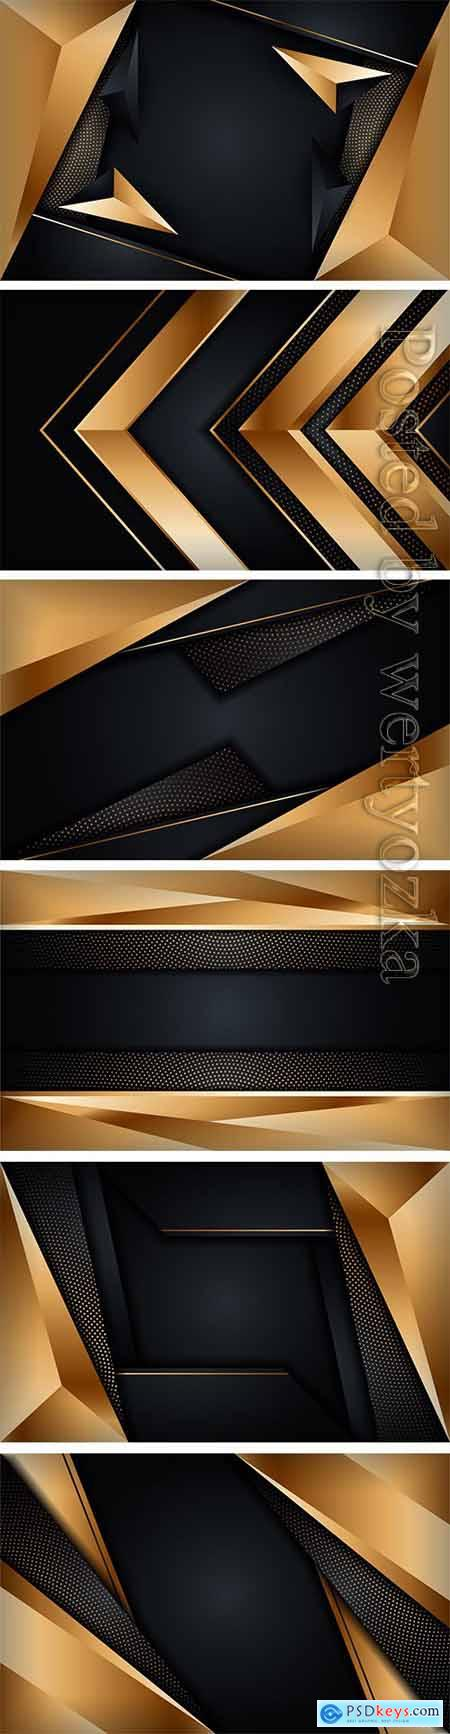 Abstract luxury dark background with golden lines combinations